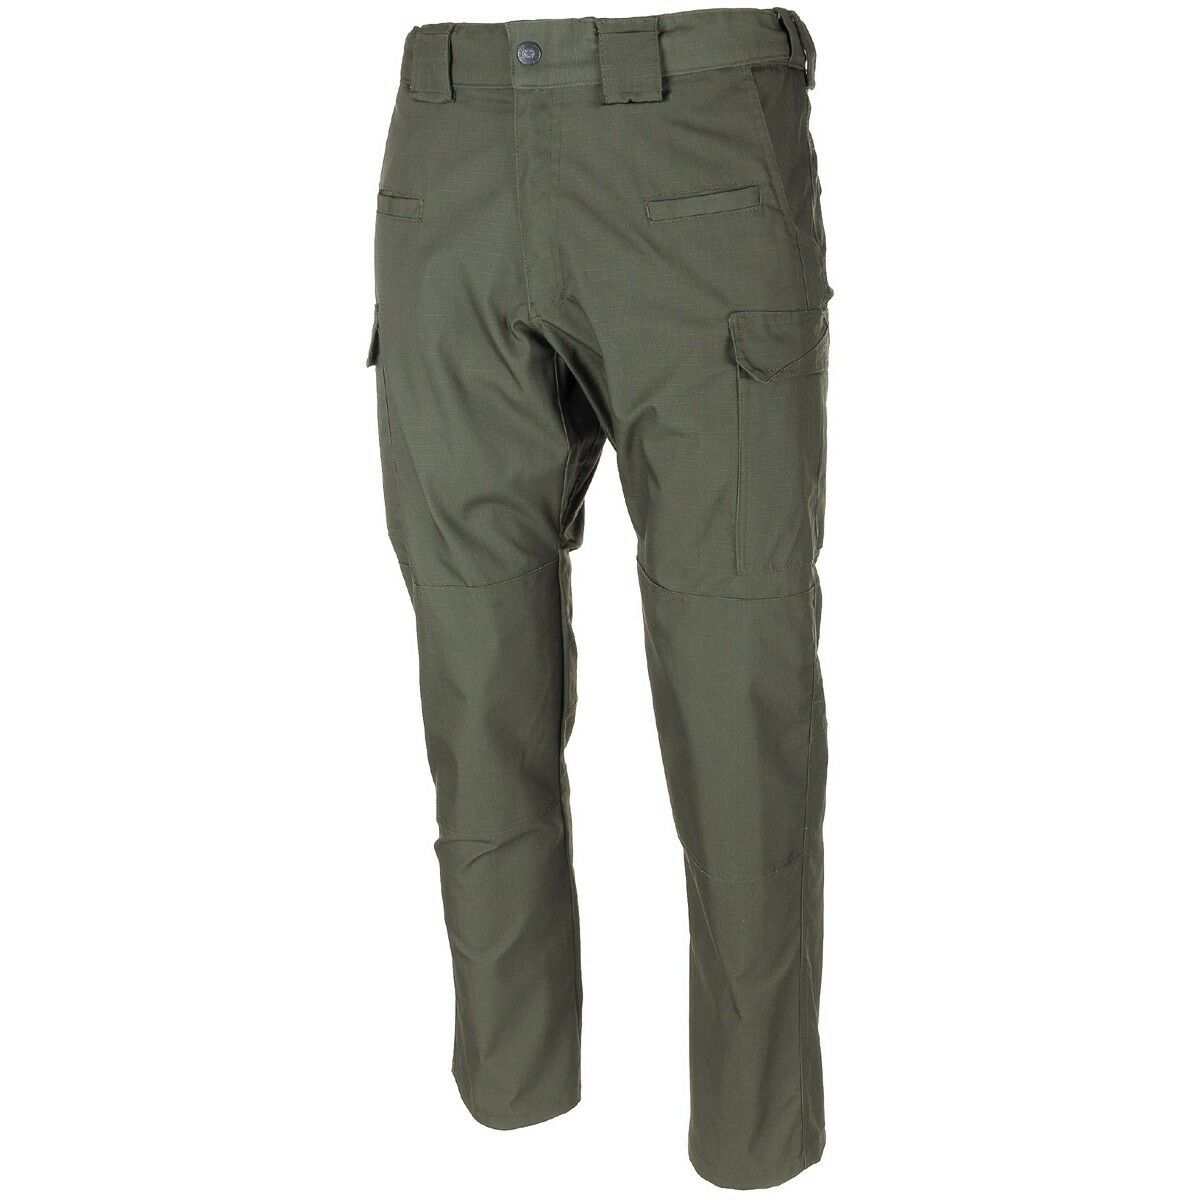 MFH Men's trousers Tactical army camping Outdoor Teflon Rip Stop OD green